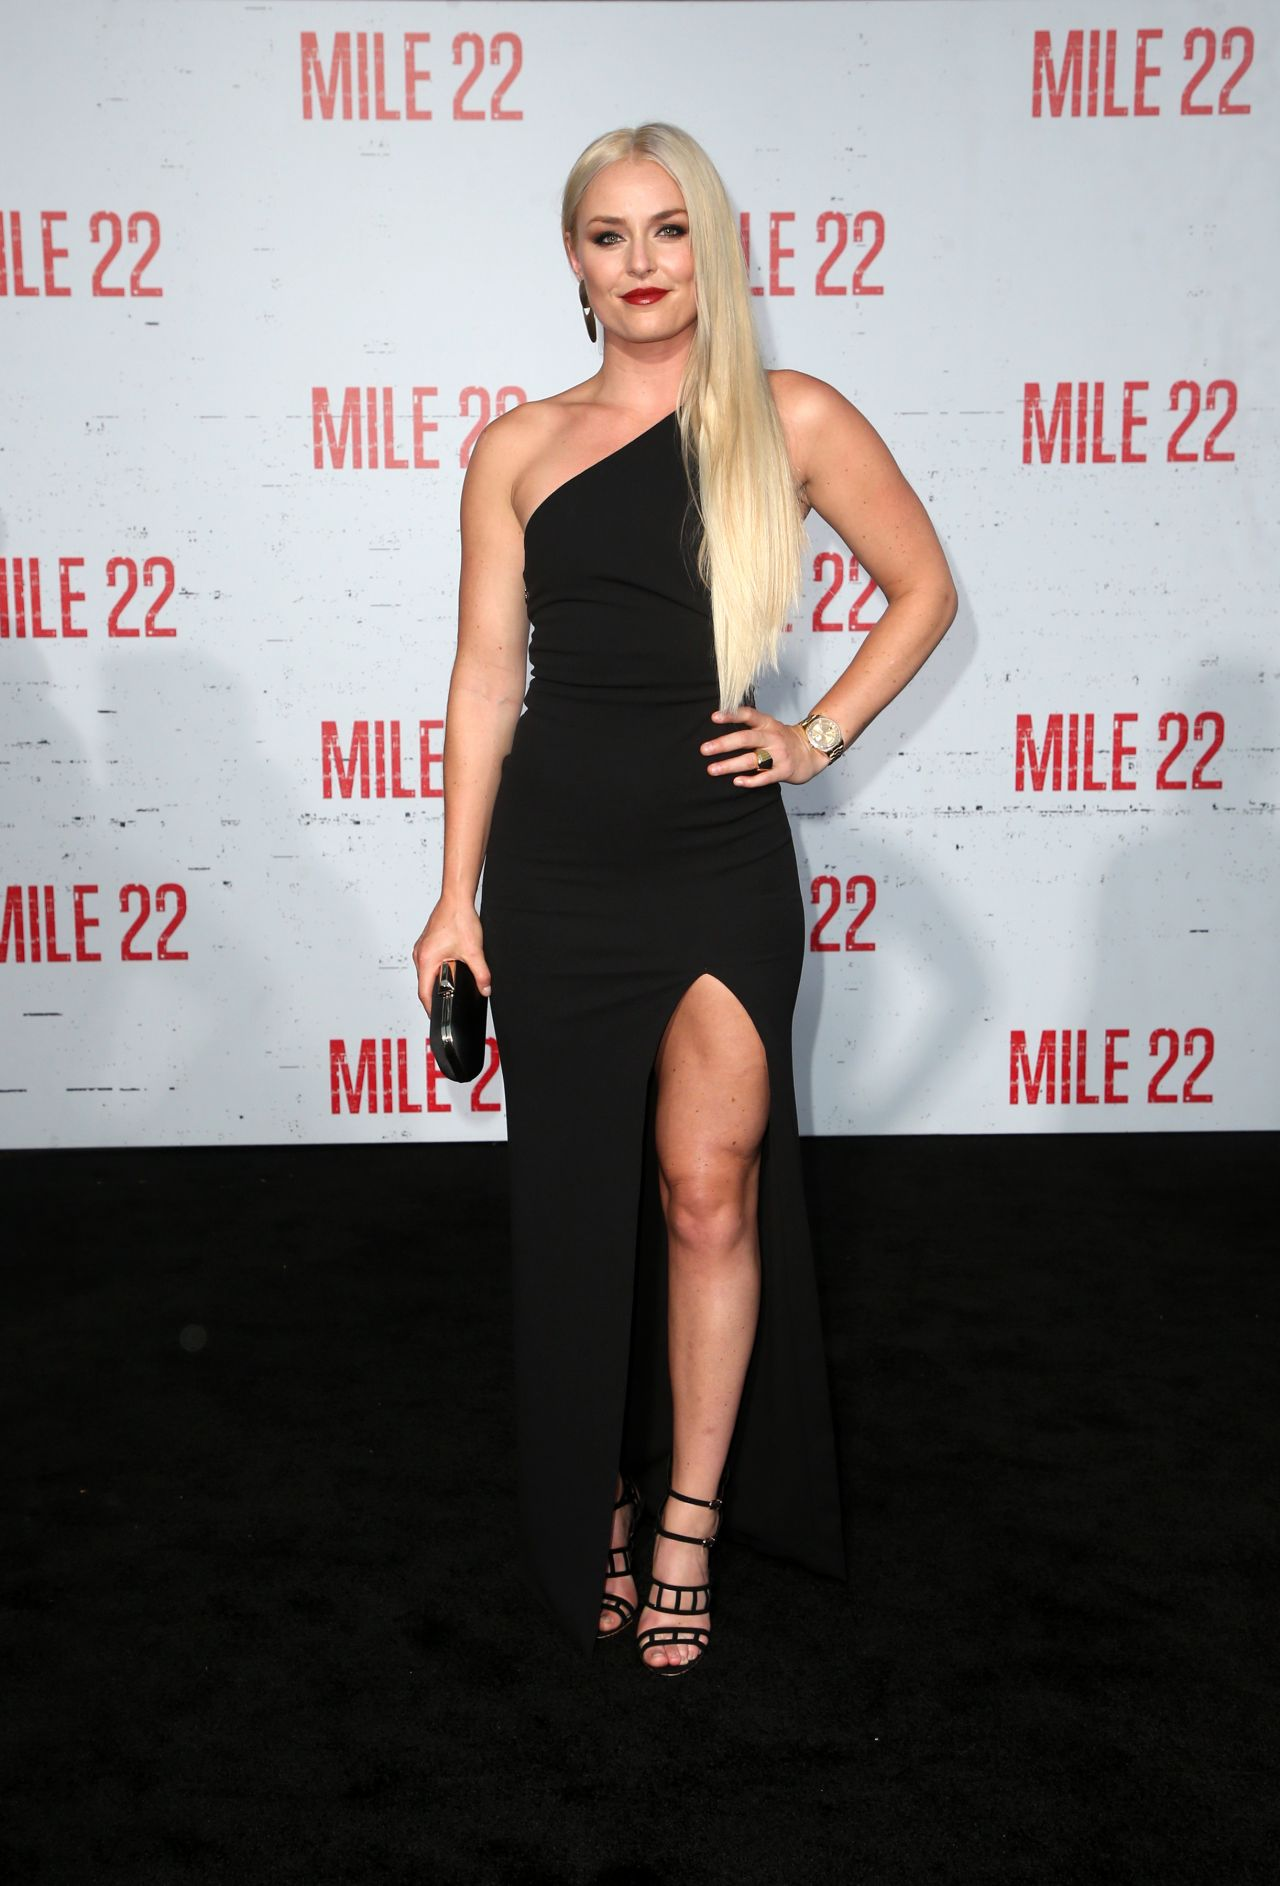 Lindsey Vonn Quot Mile 22 Quot Premiere In Los Angeles